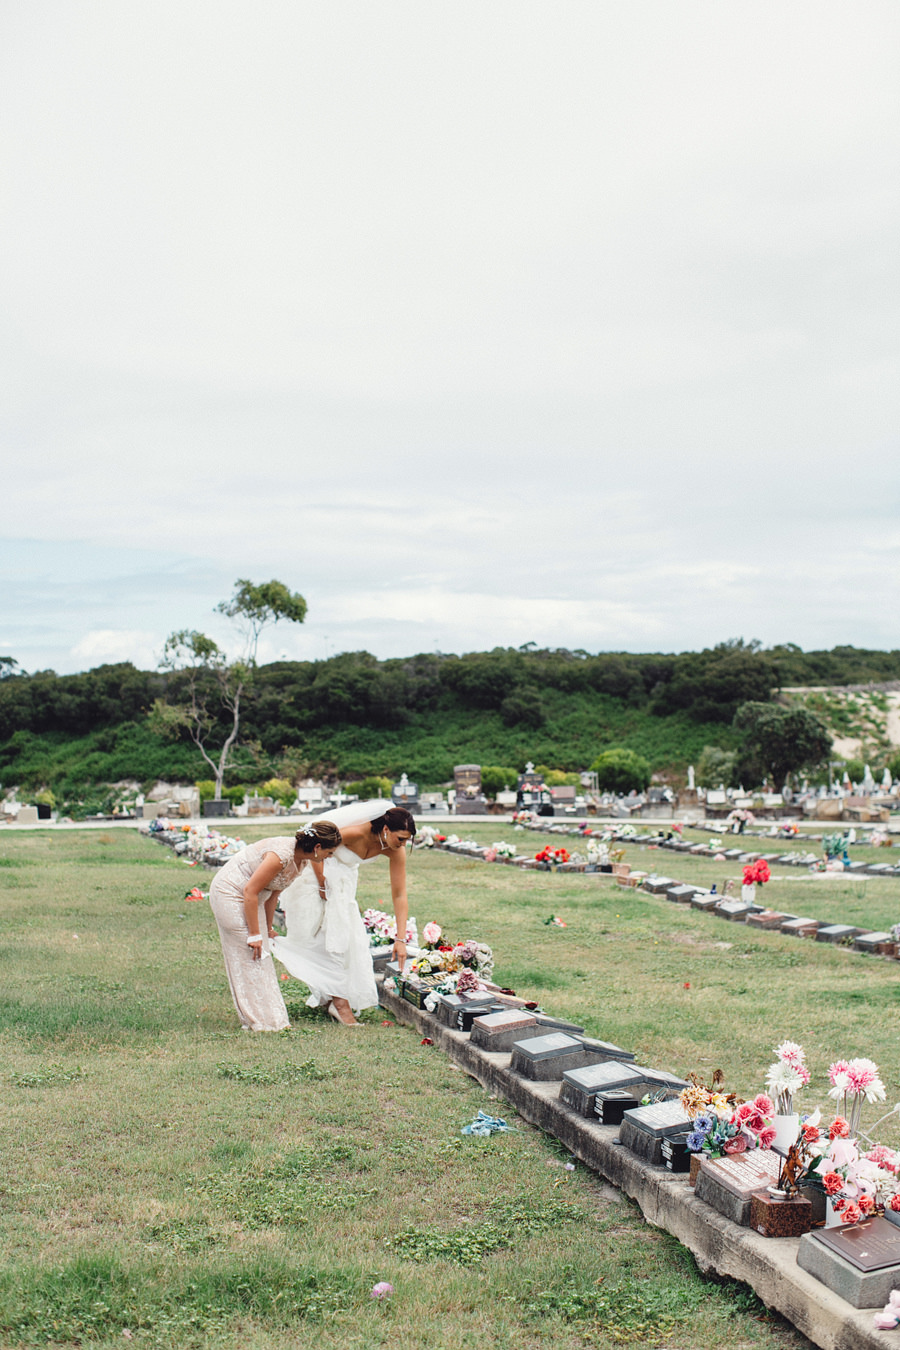 Documentary Wedding Photographer: Bride visiting cemetary